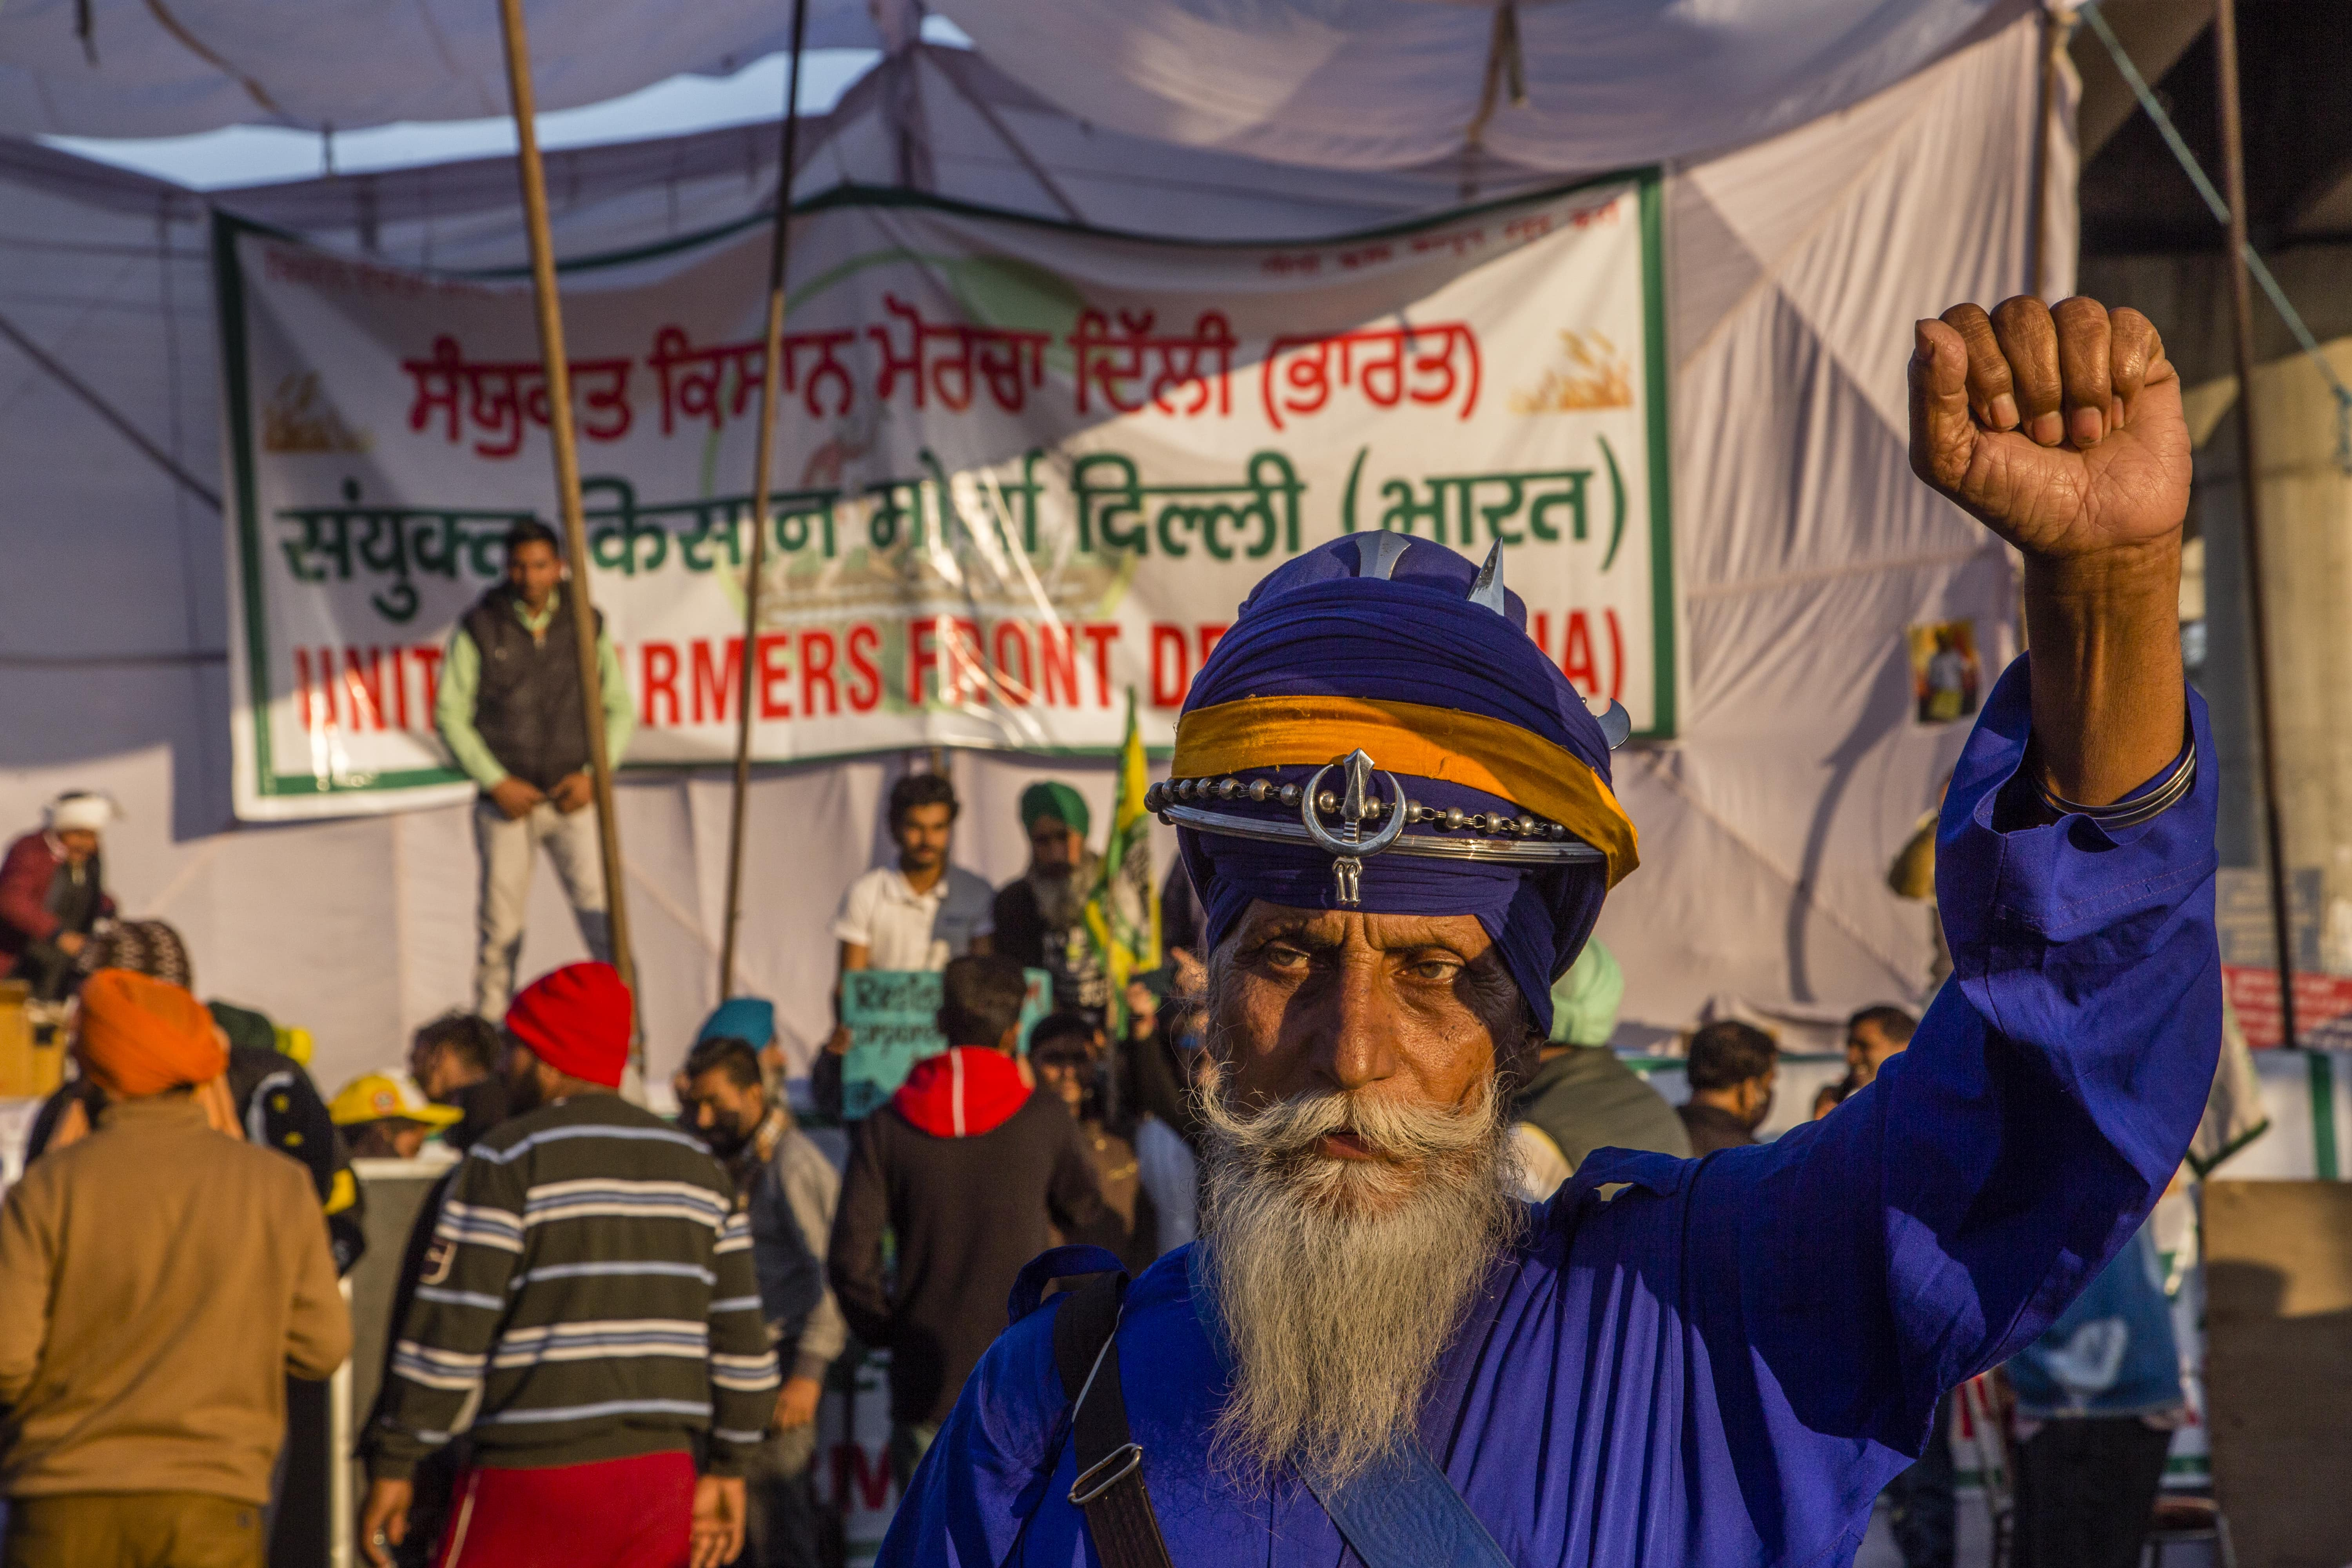 A bearded man dressed all in blue raises up his fist at a political rally for Indian farmers.